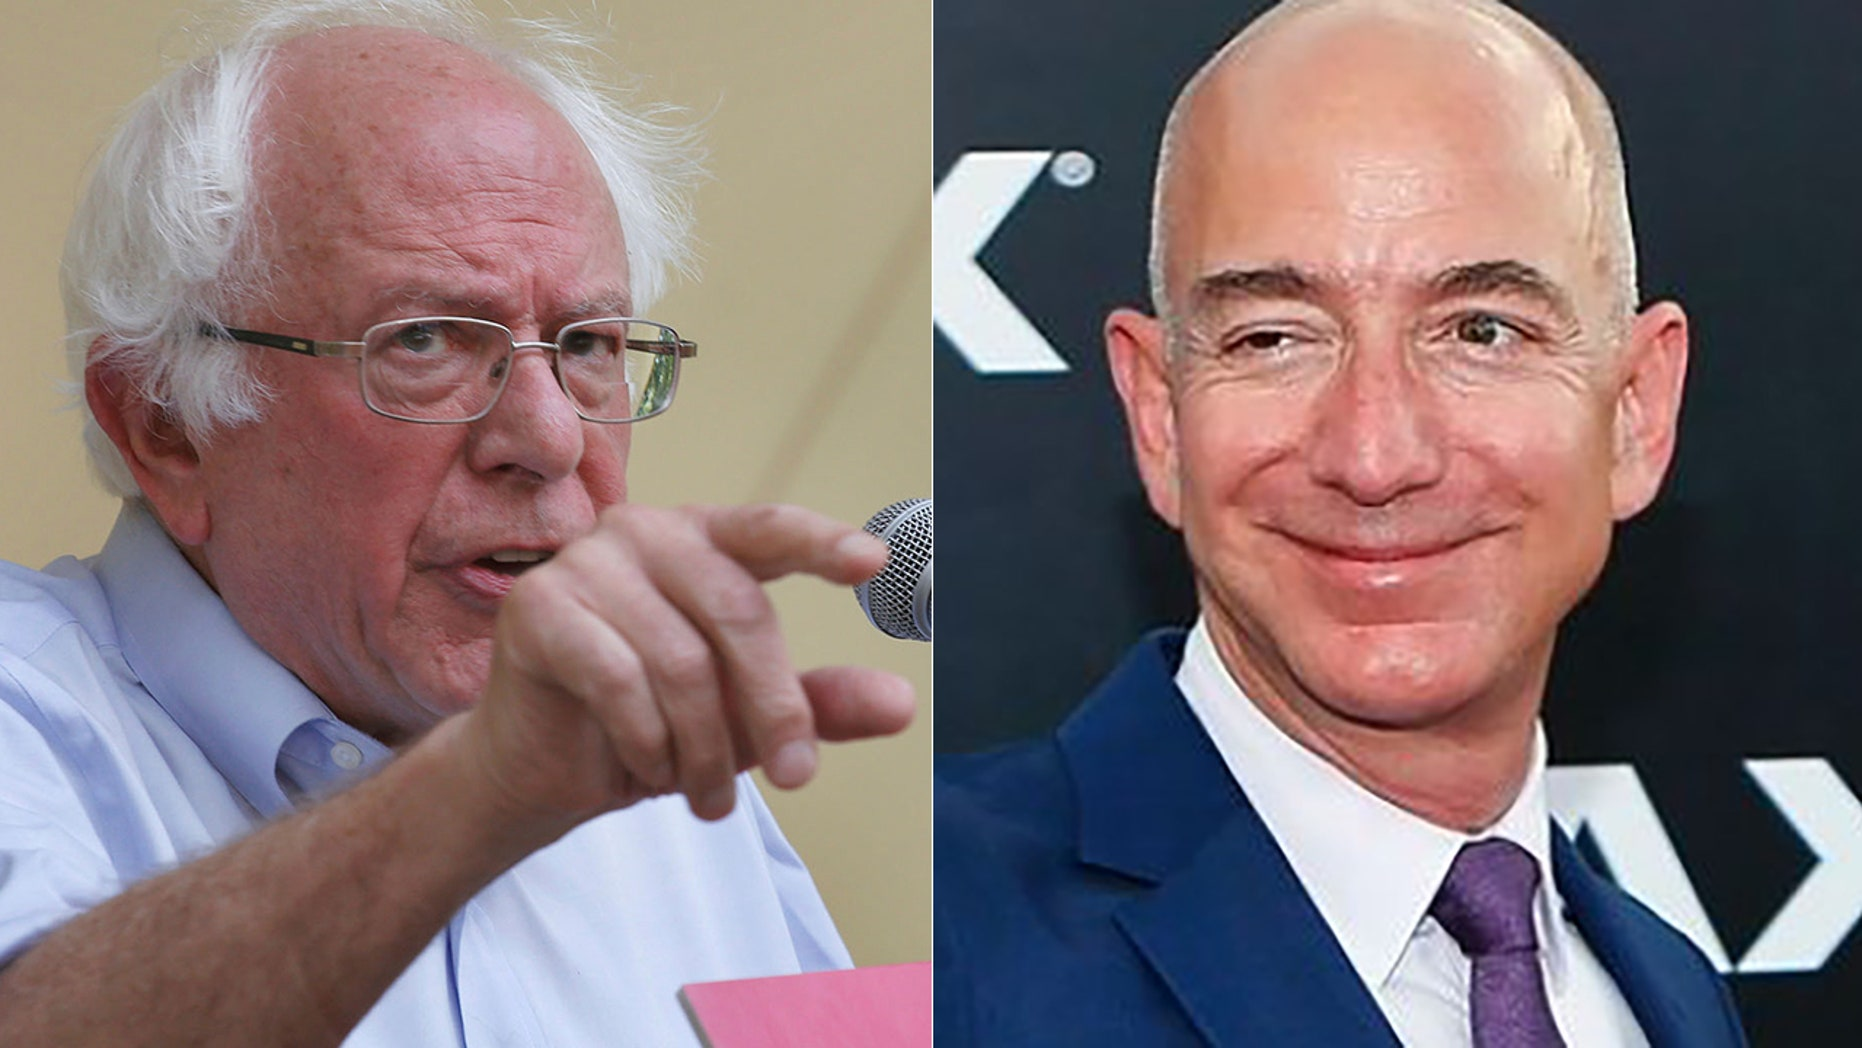 Bernie Sanders had words for Amazon CEO Jeff Bezos on Monday.